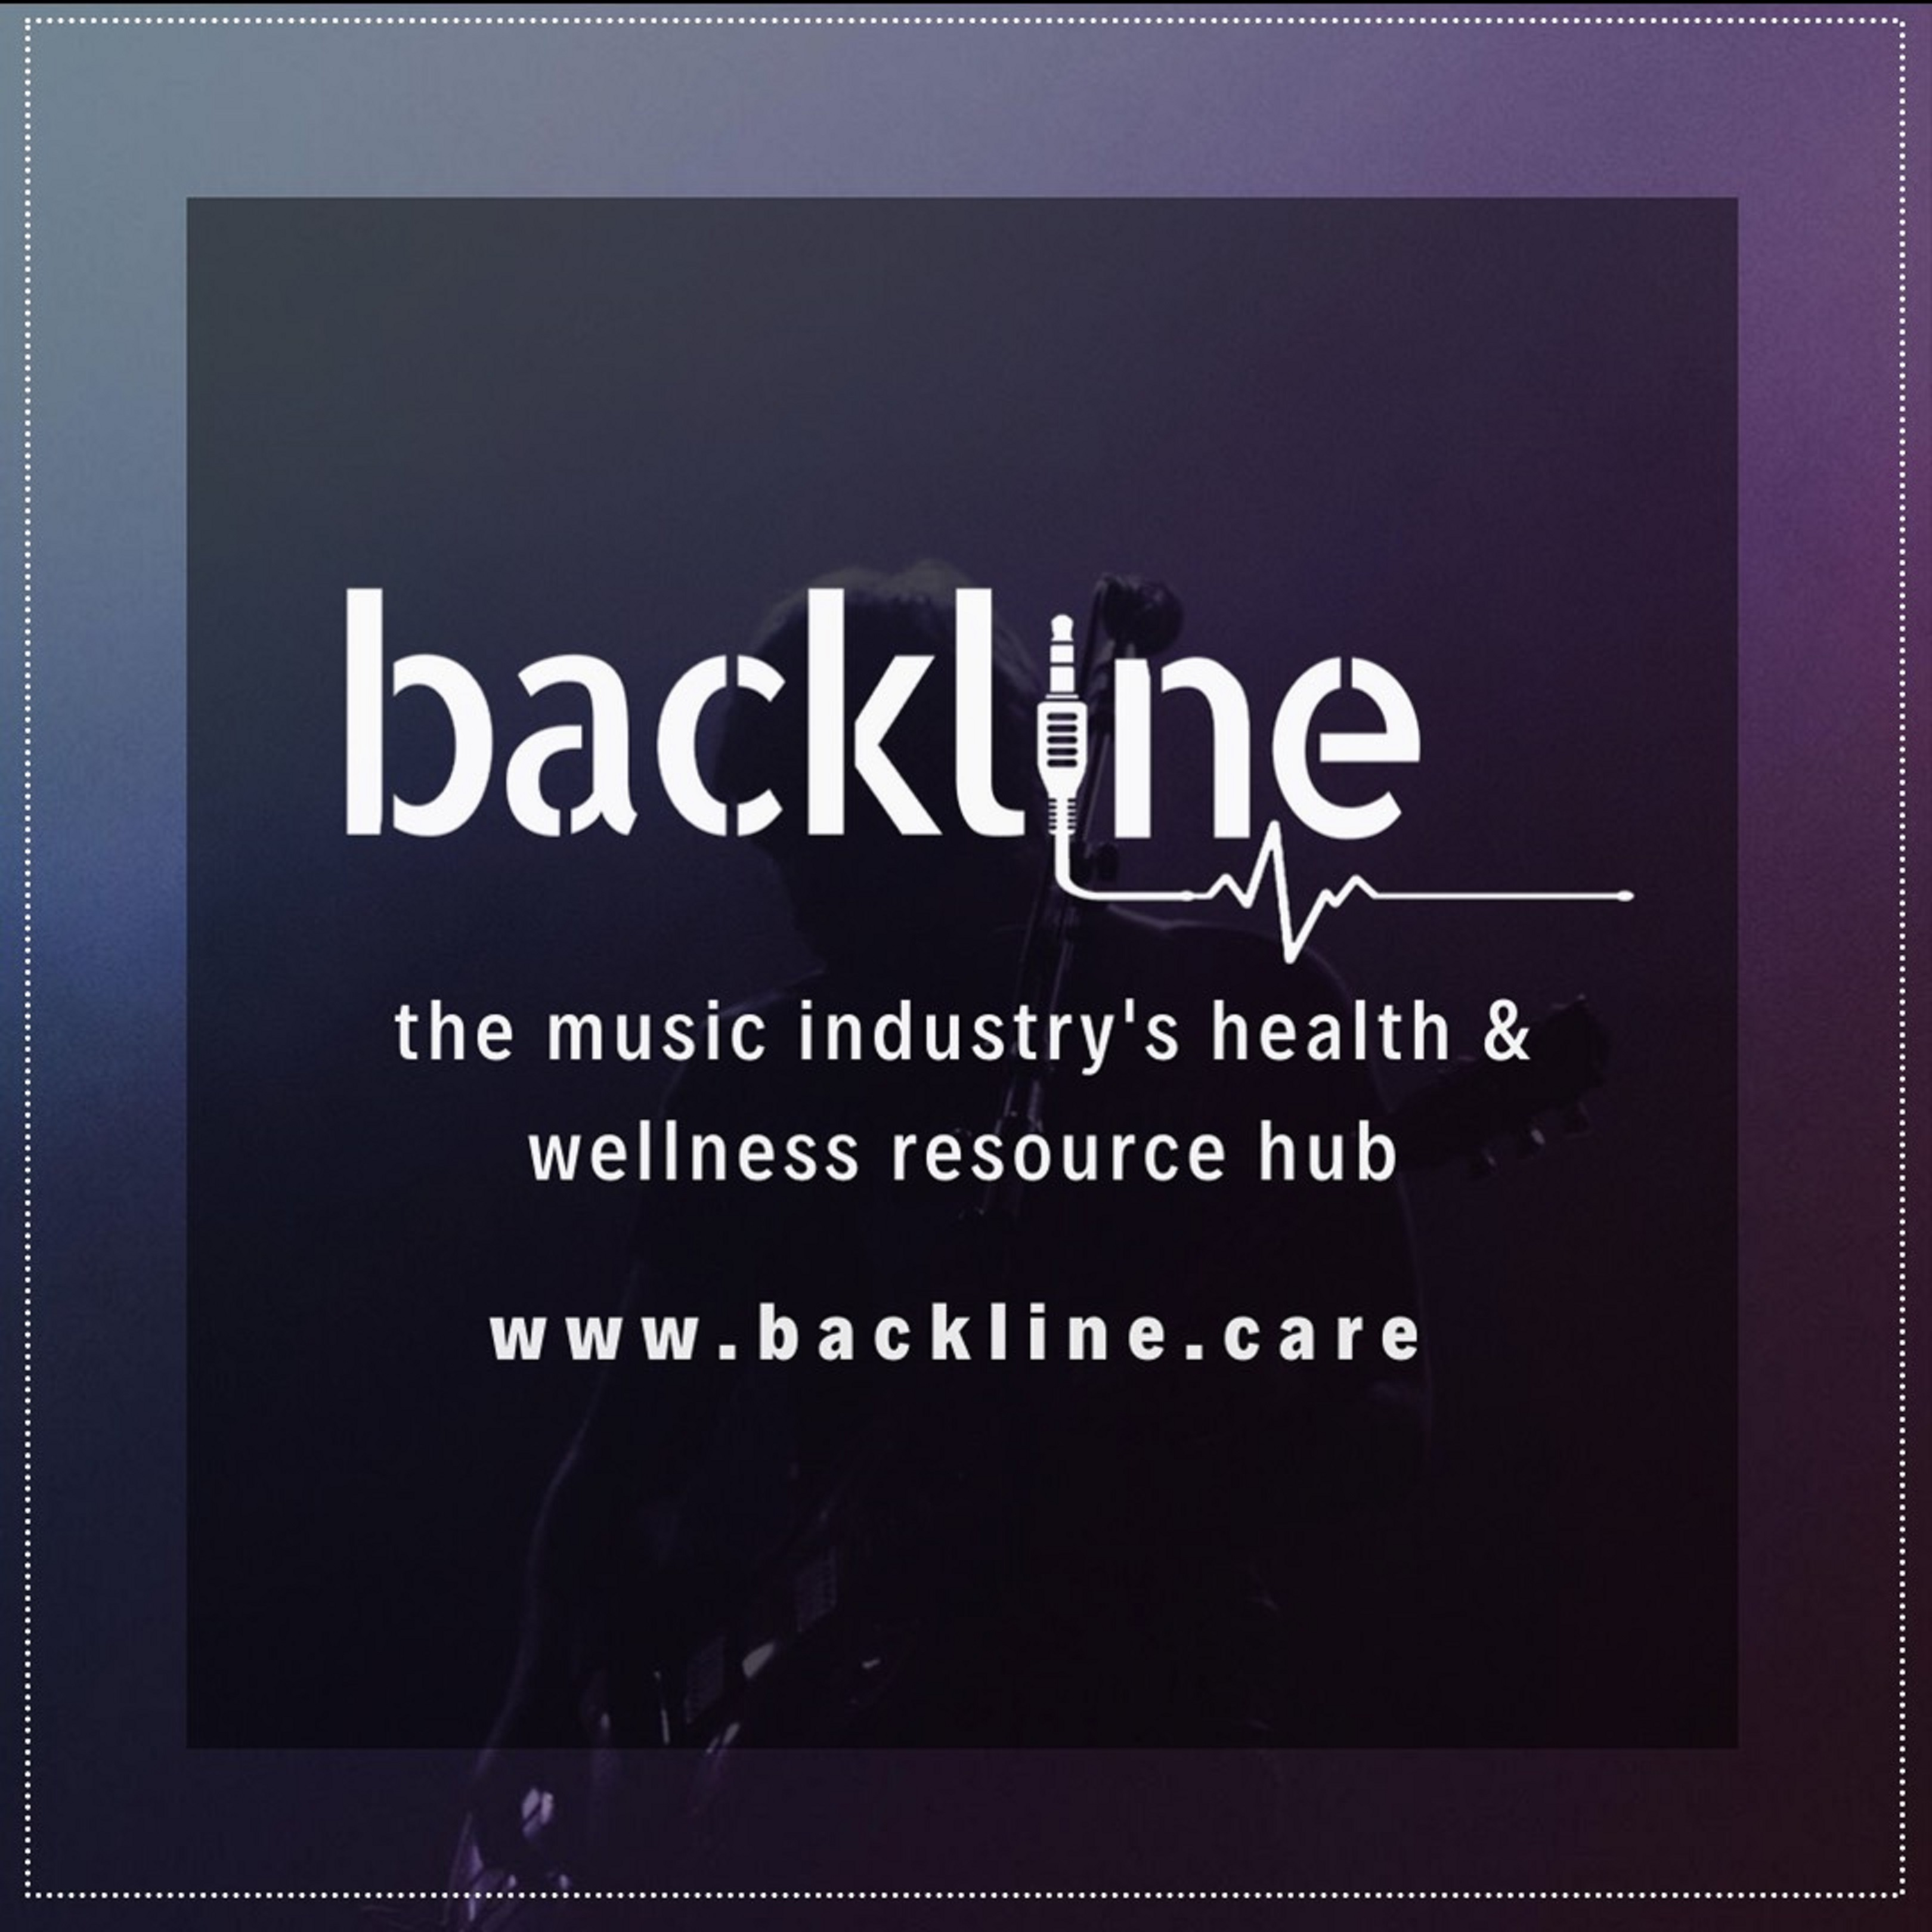 Backline:  The Music Industry's health & wellness resource hub